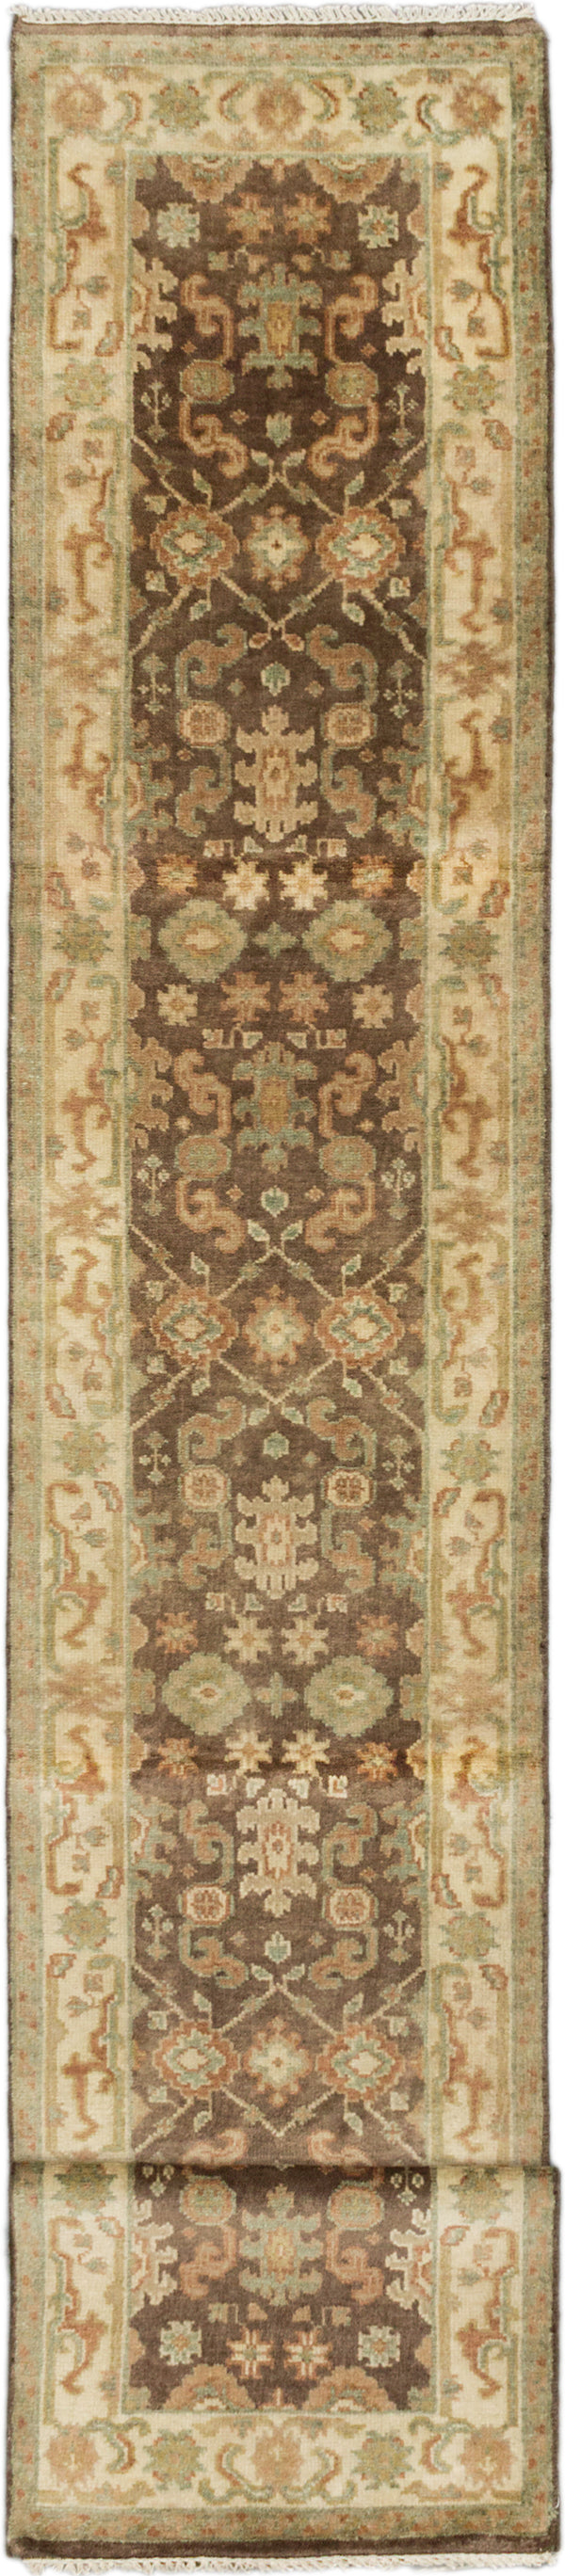 "Hand-knotted Indian Floral  Traditional Royal-Ushak Runner rug  Cream, Dark Brown 2'7 x 15'9"" """